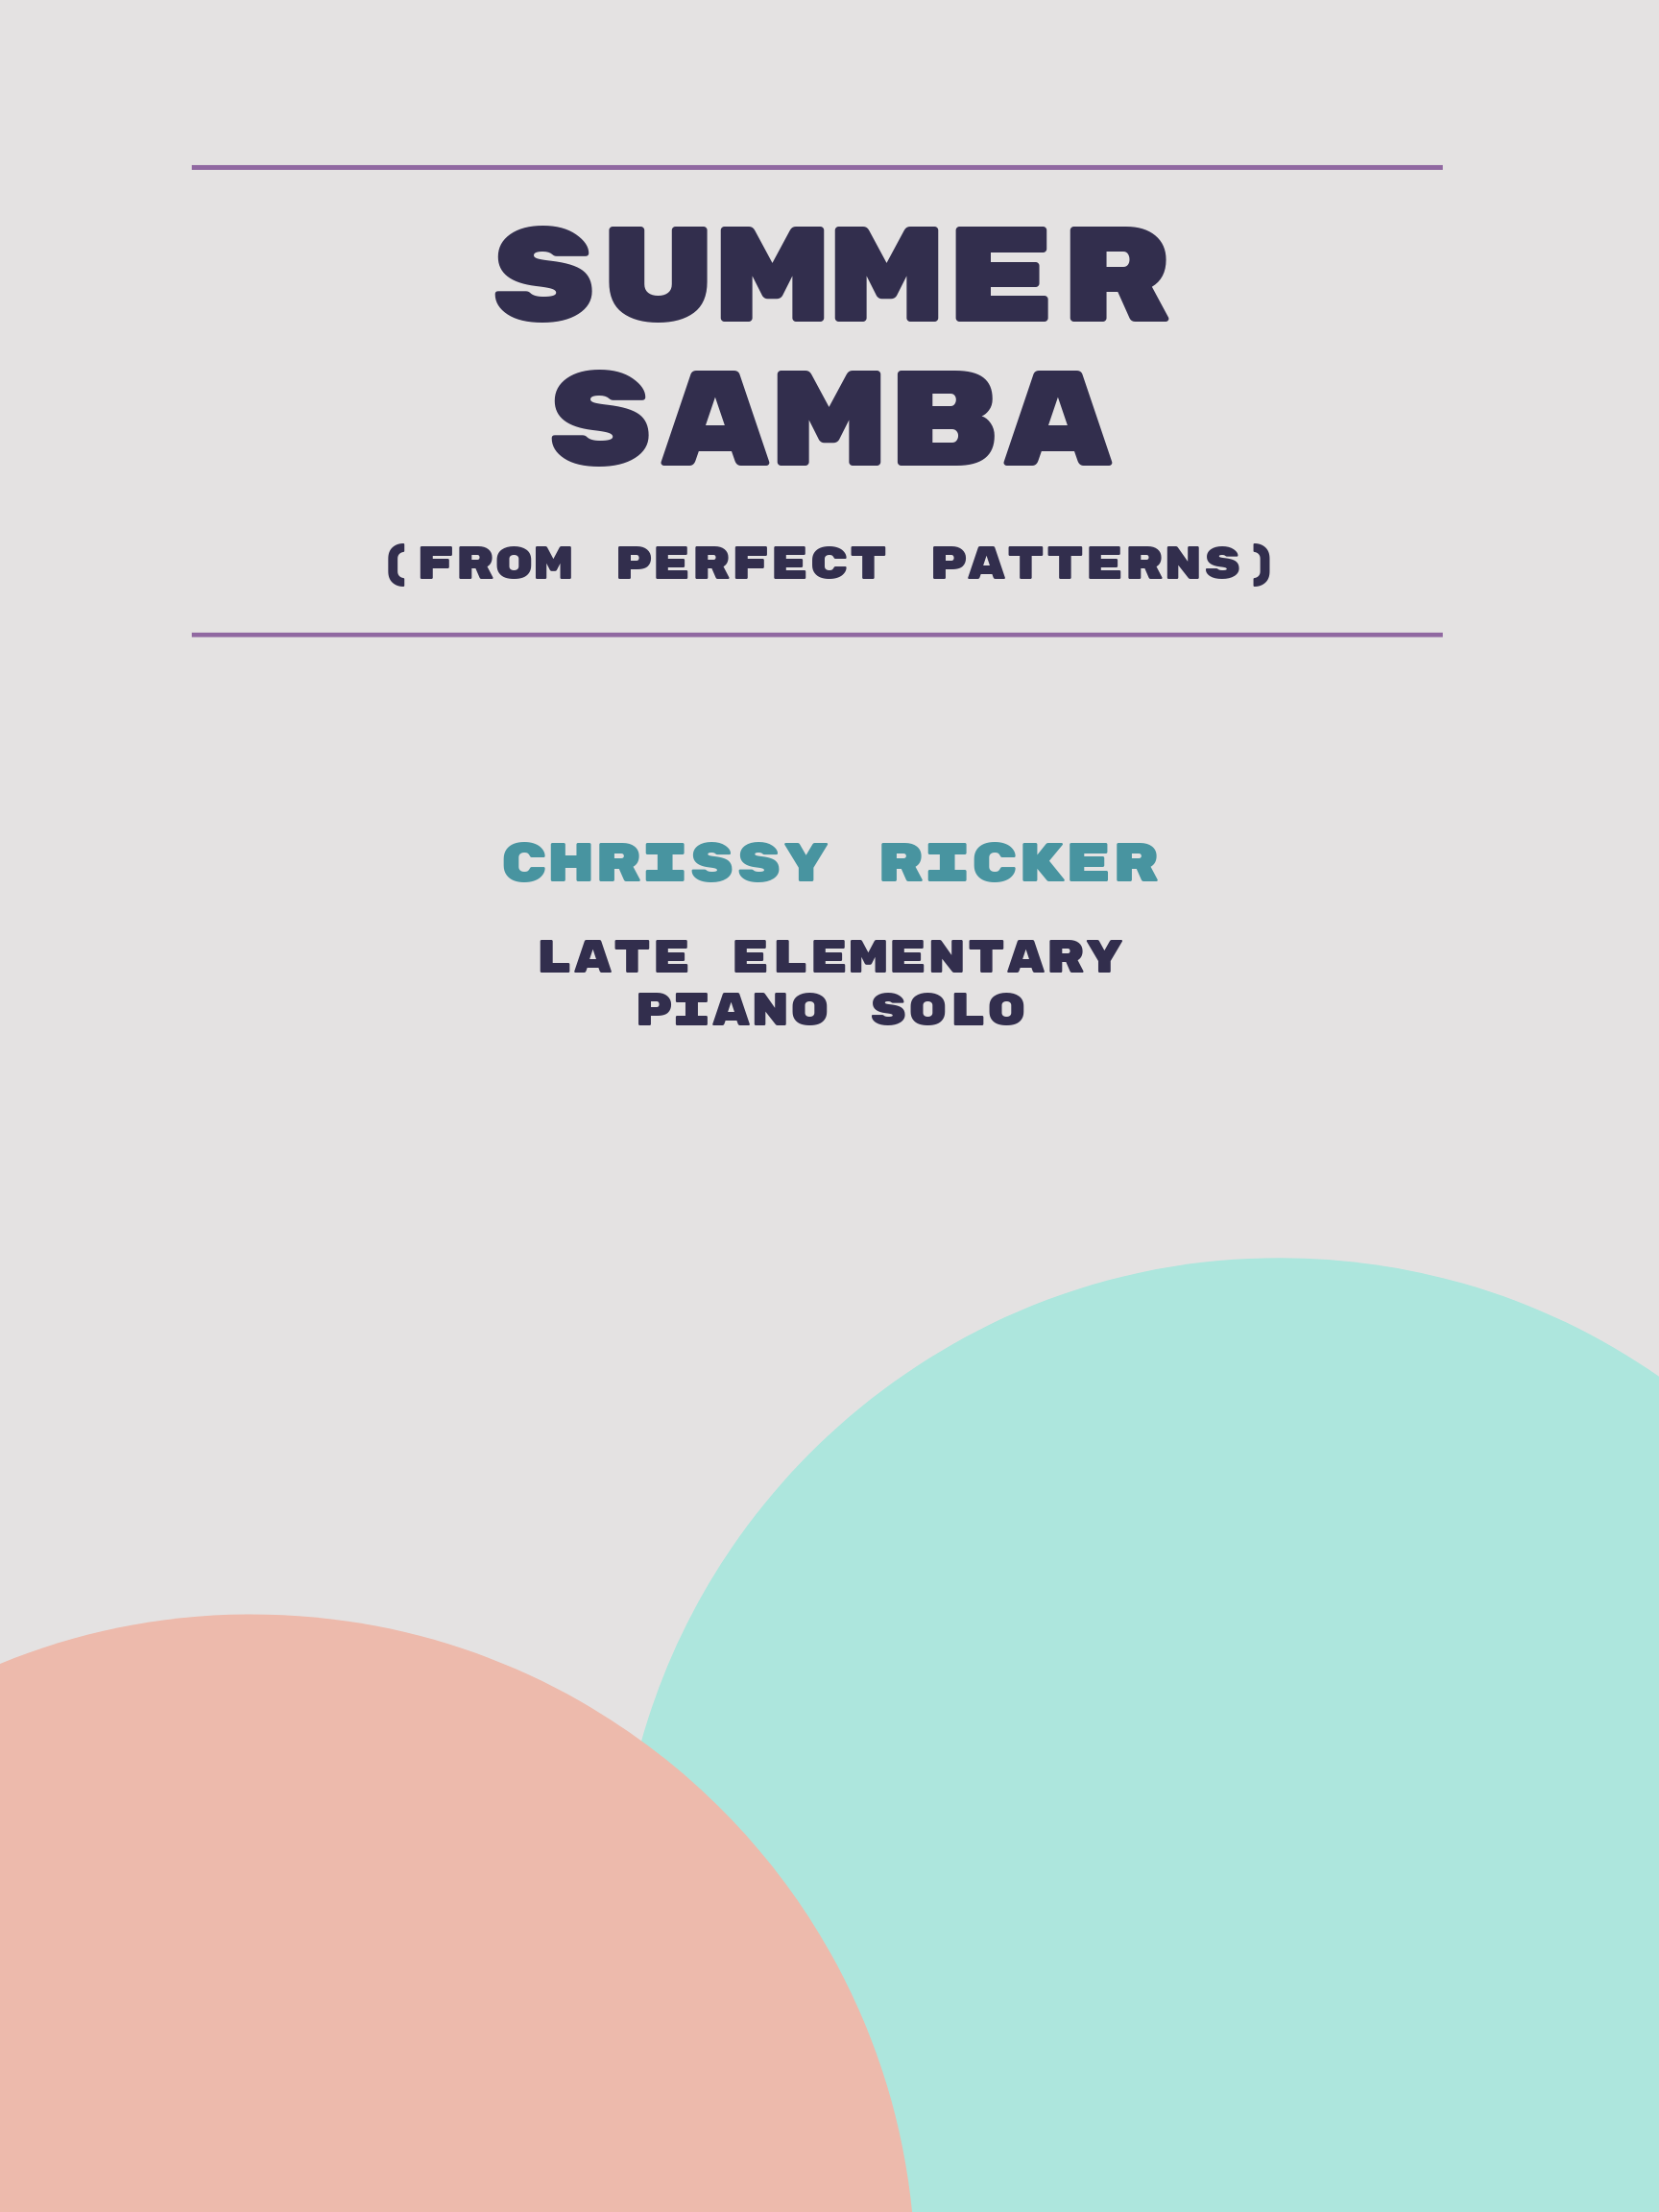 Summer Samba by Chrissy Ricker